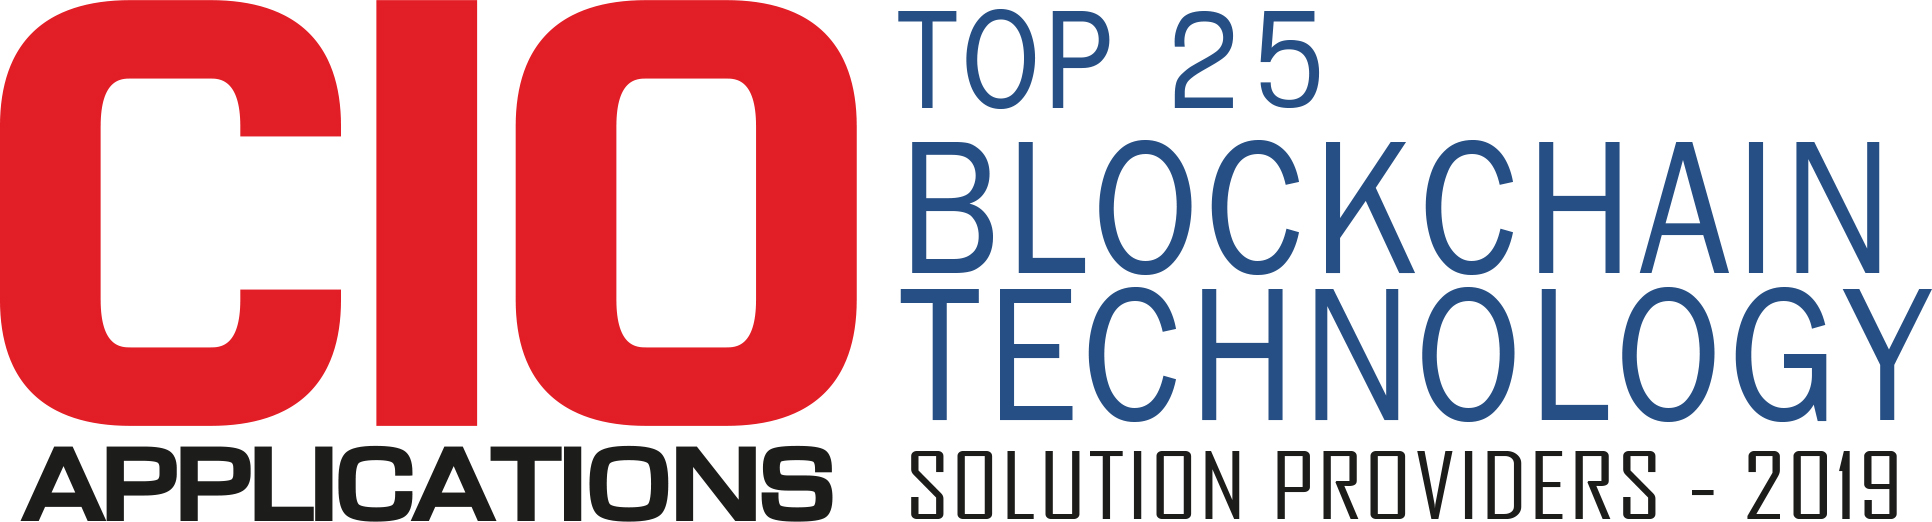 Top 25 Blockchain Technology Solution Companies - 2019